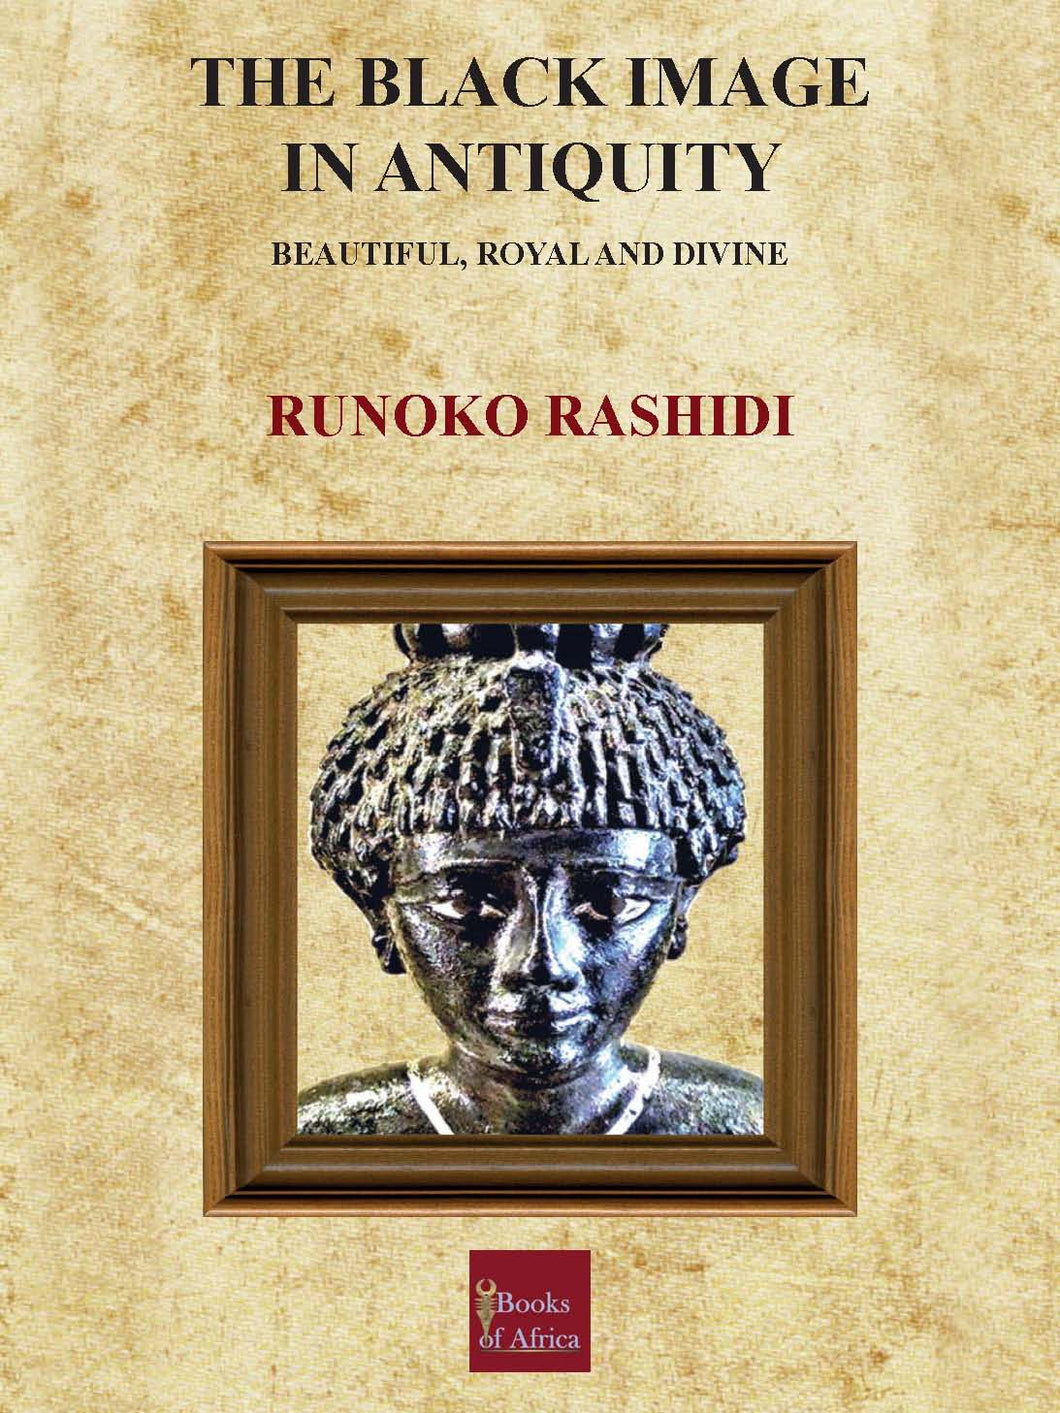 THE BLACK IMAGE IN ANTIQUITY – Beautiful, Royal and Divine by Runoko Rashidi